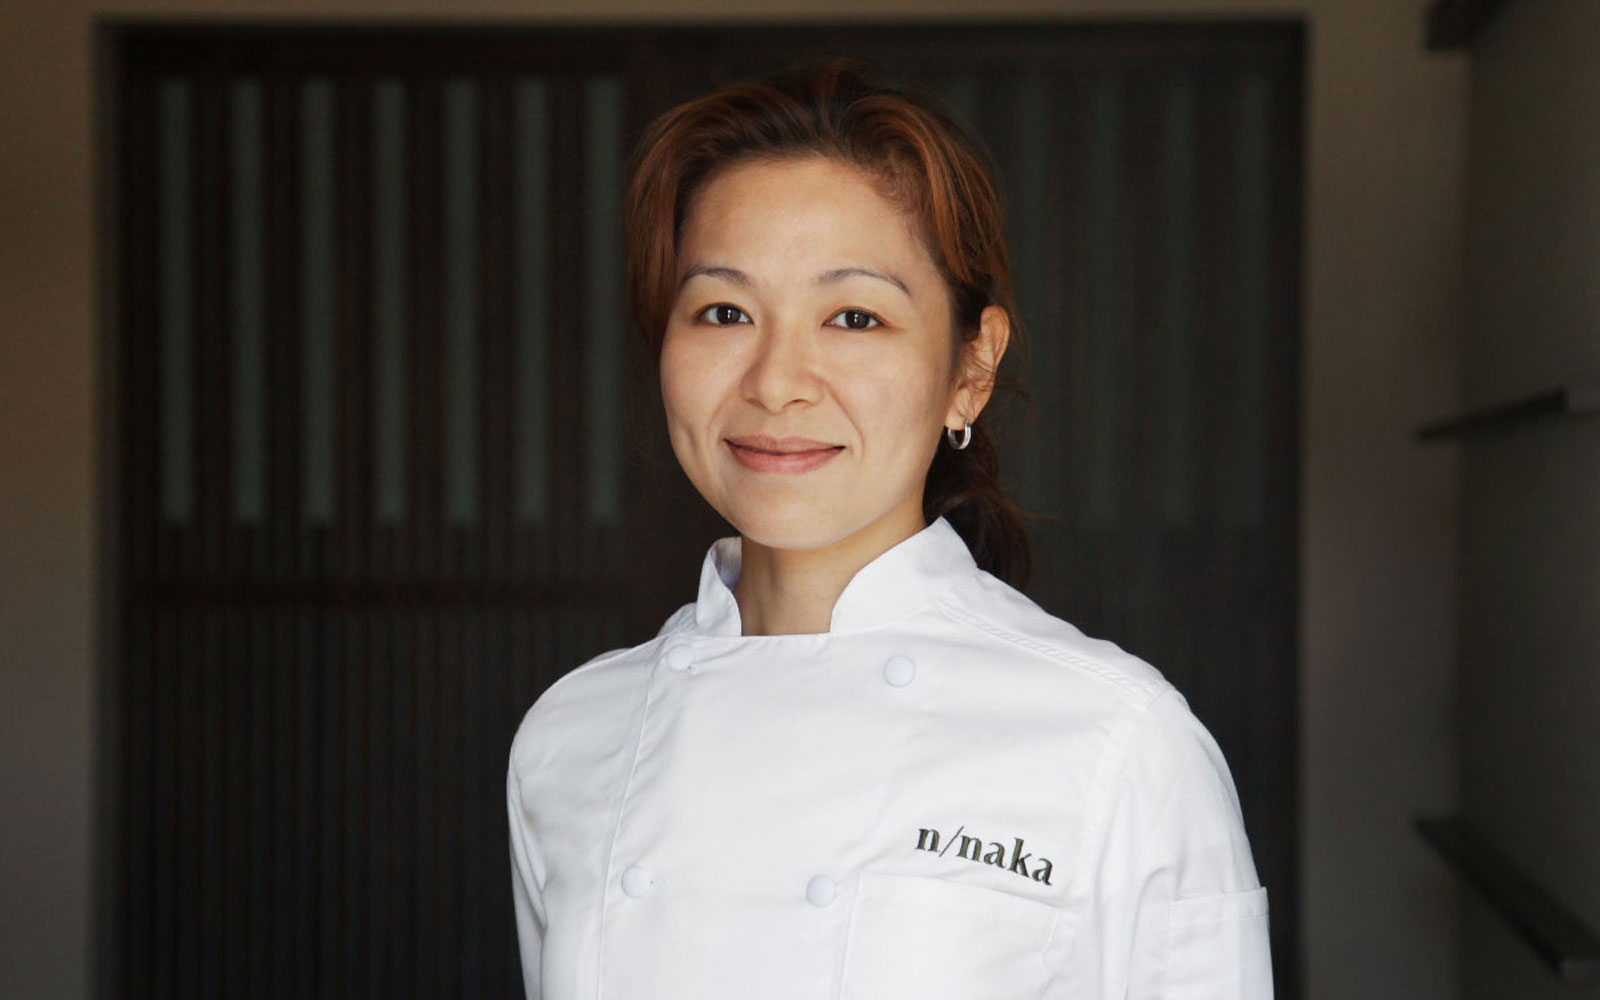 At N/naka in Los Angeles, Chef Niki Nakayama Brings California Ingredients to the Art of Kaiseki